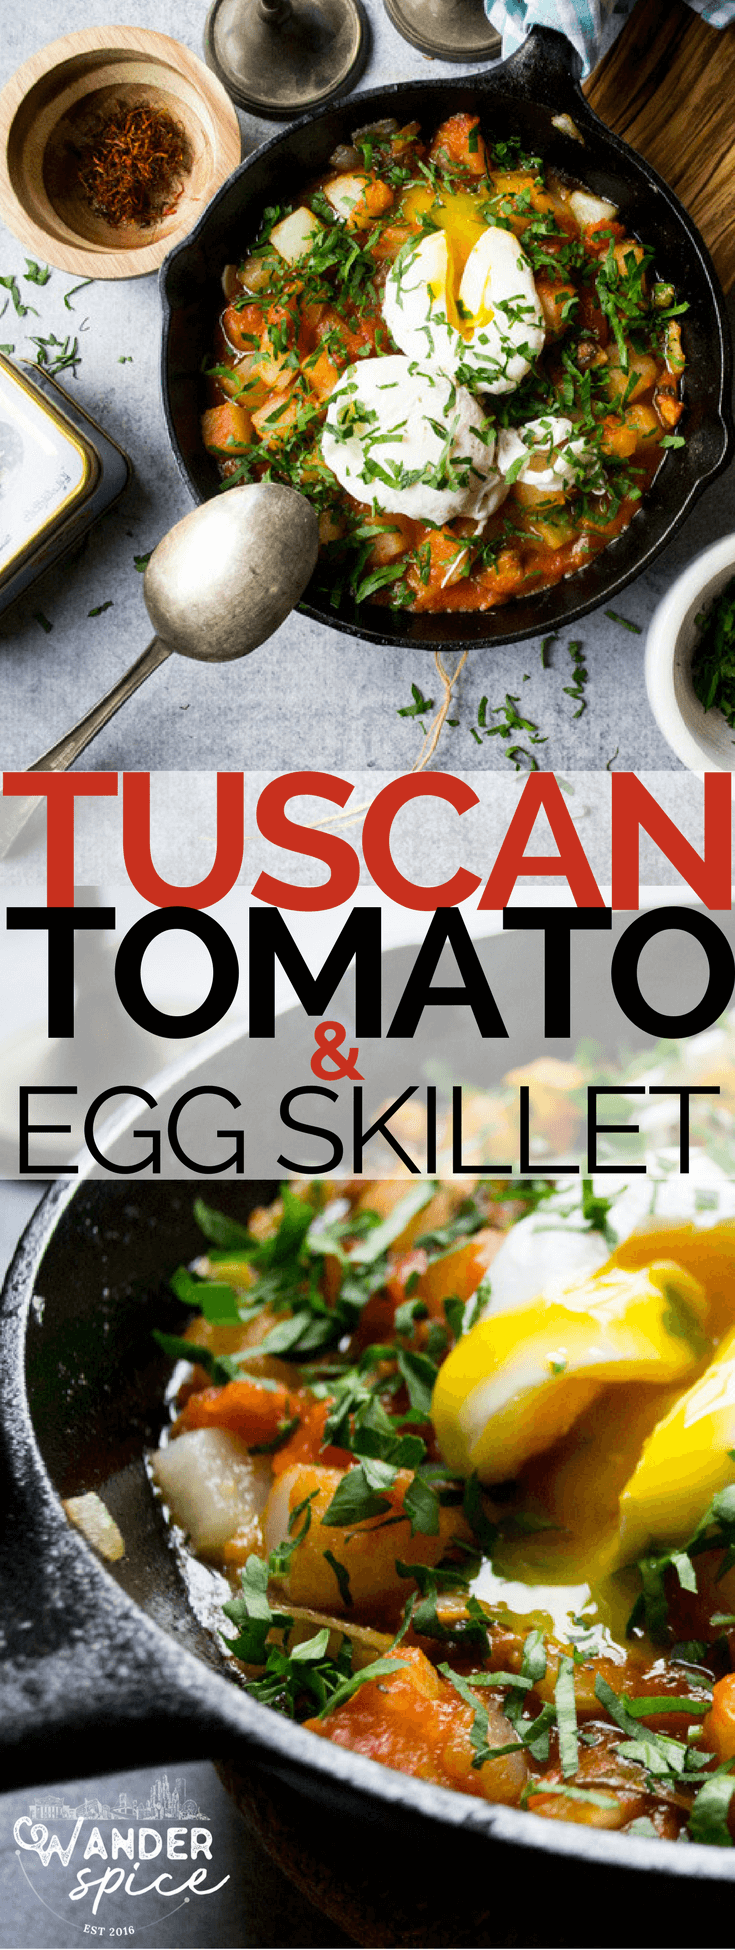 Tuscan Tomato Egg Skillet, a hearty, Italian way to start the morning